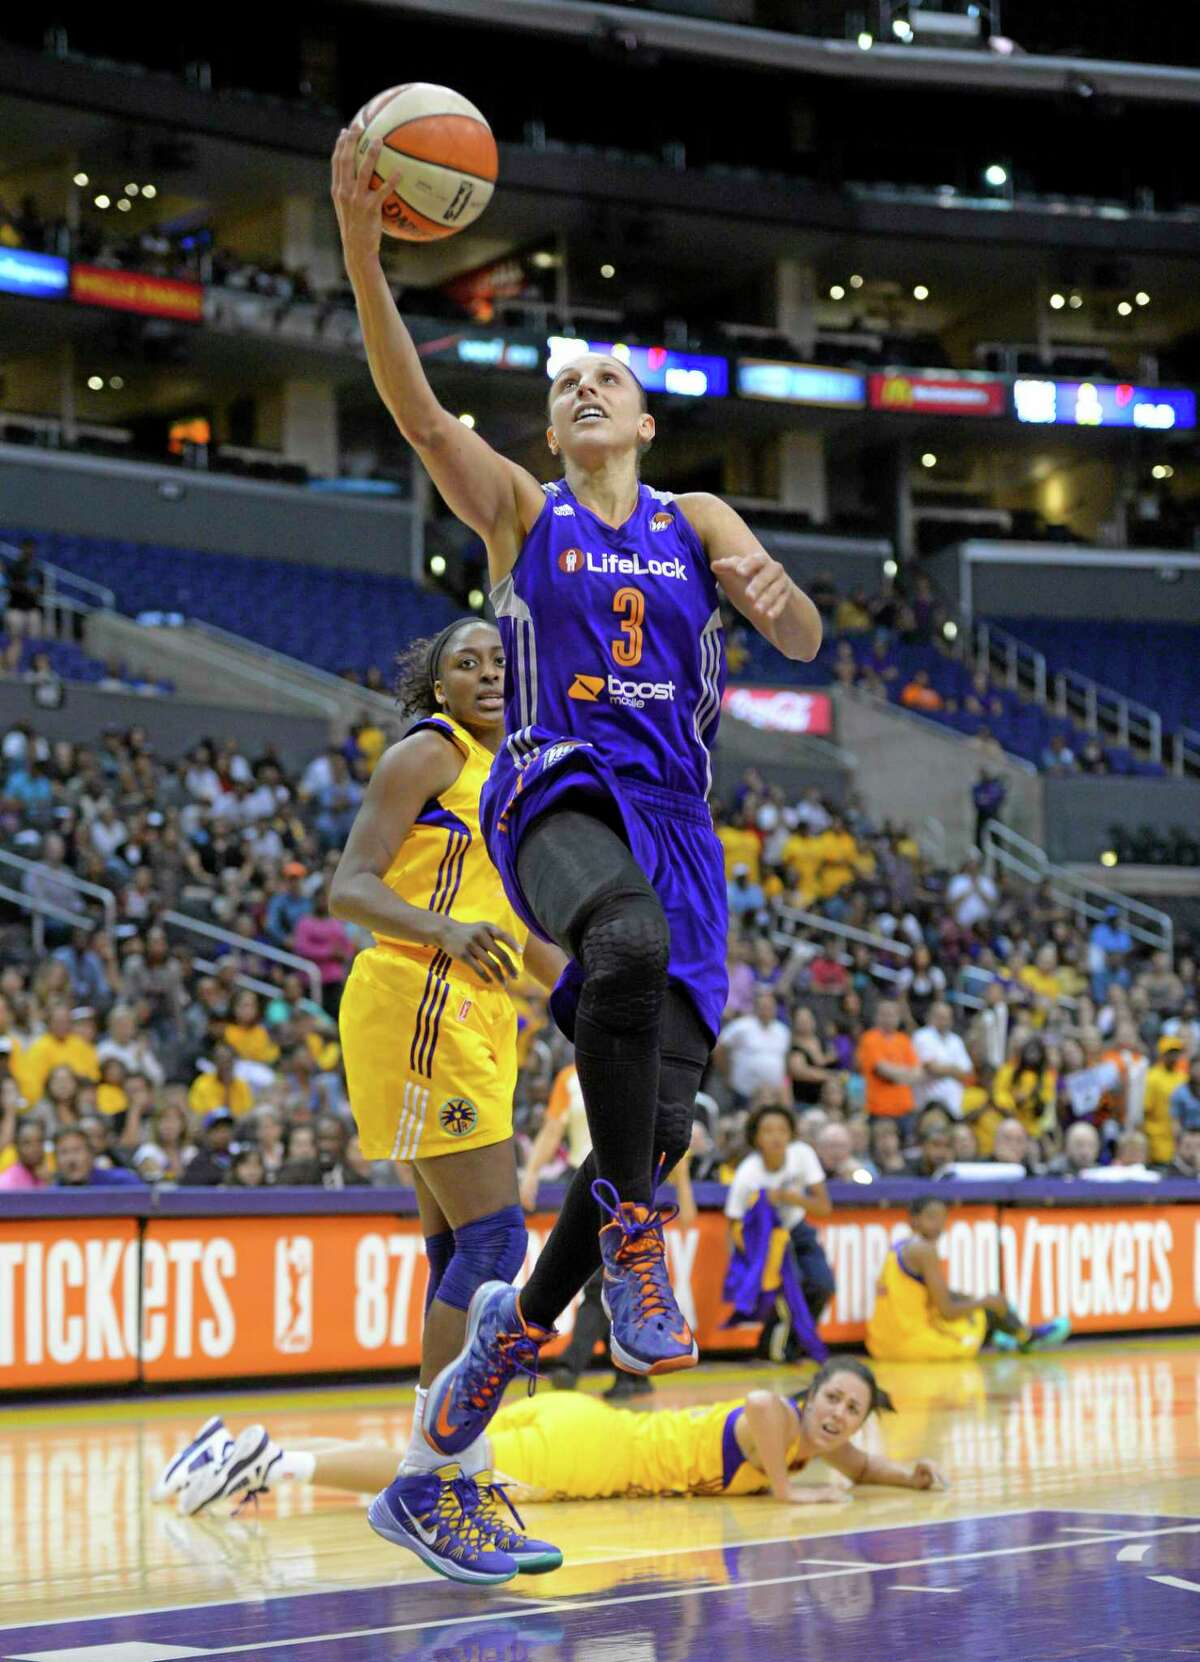 Phoenix Mercury guard and UConn legend Diana Taurasi highlights the list of 33 players invited to the U.S. women's basketball national team traning camp in October in Las Vegas. The team will be led by UConn coach Geno Auriemma.